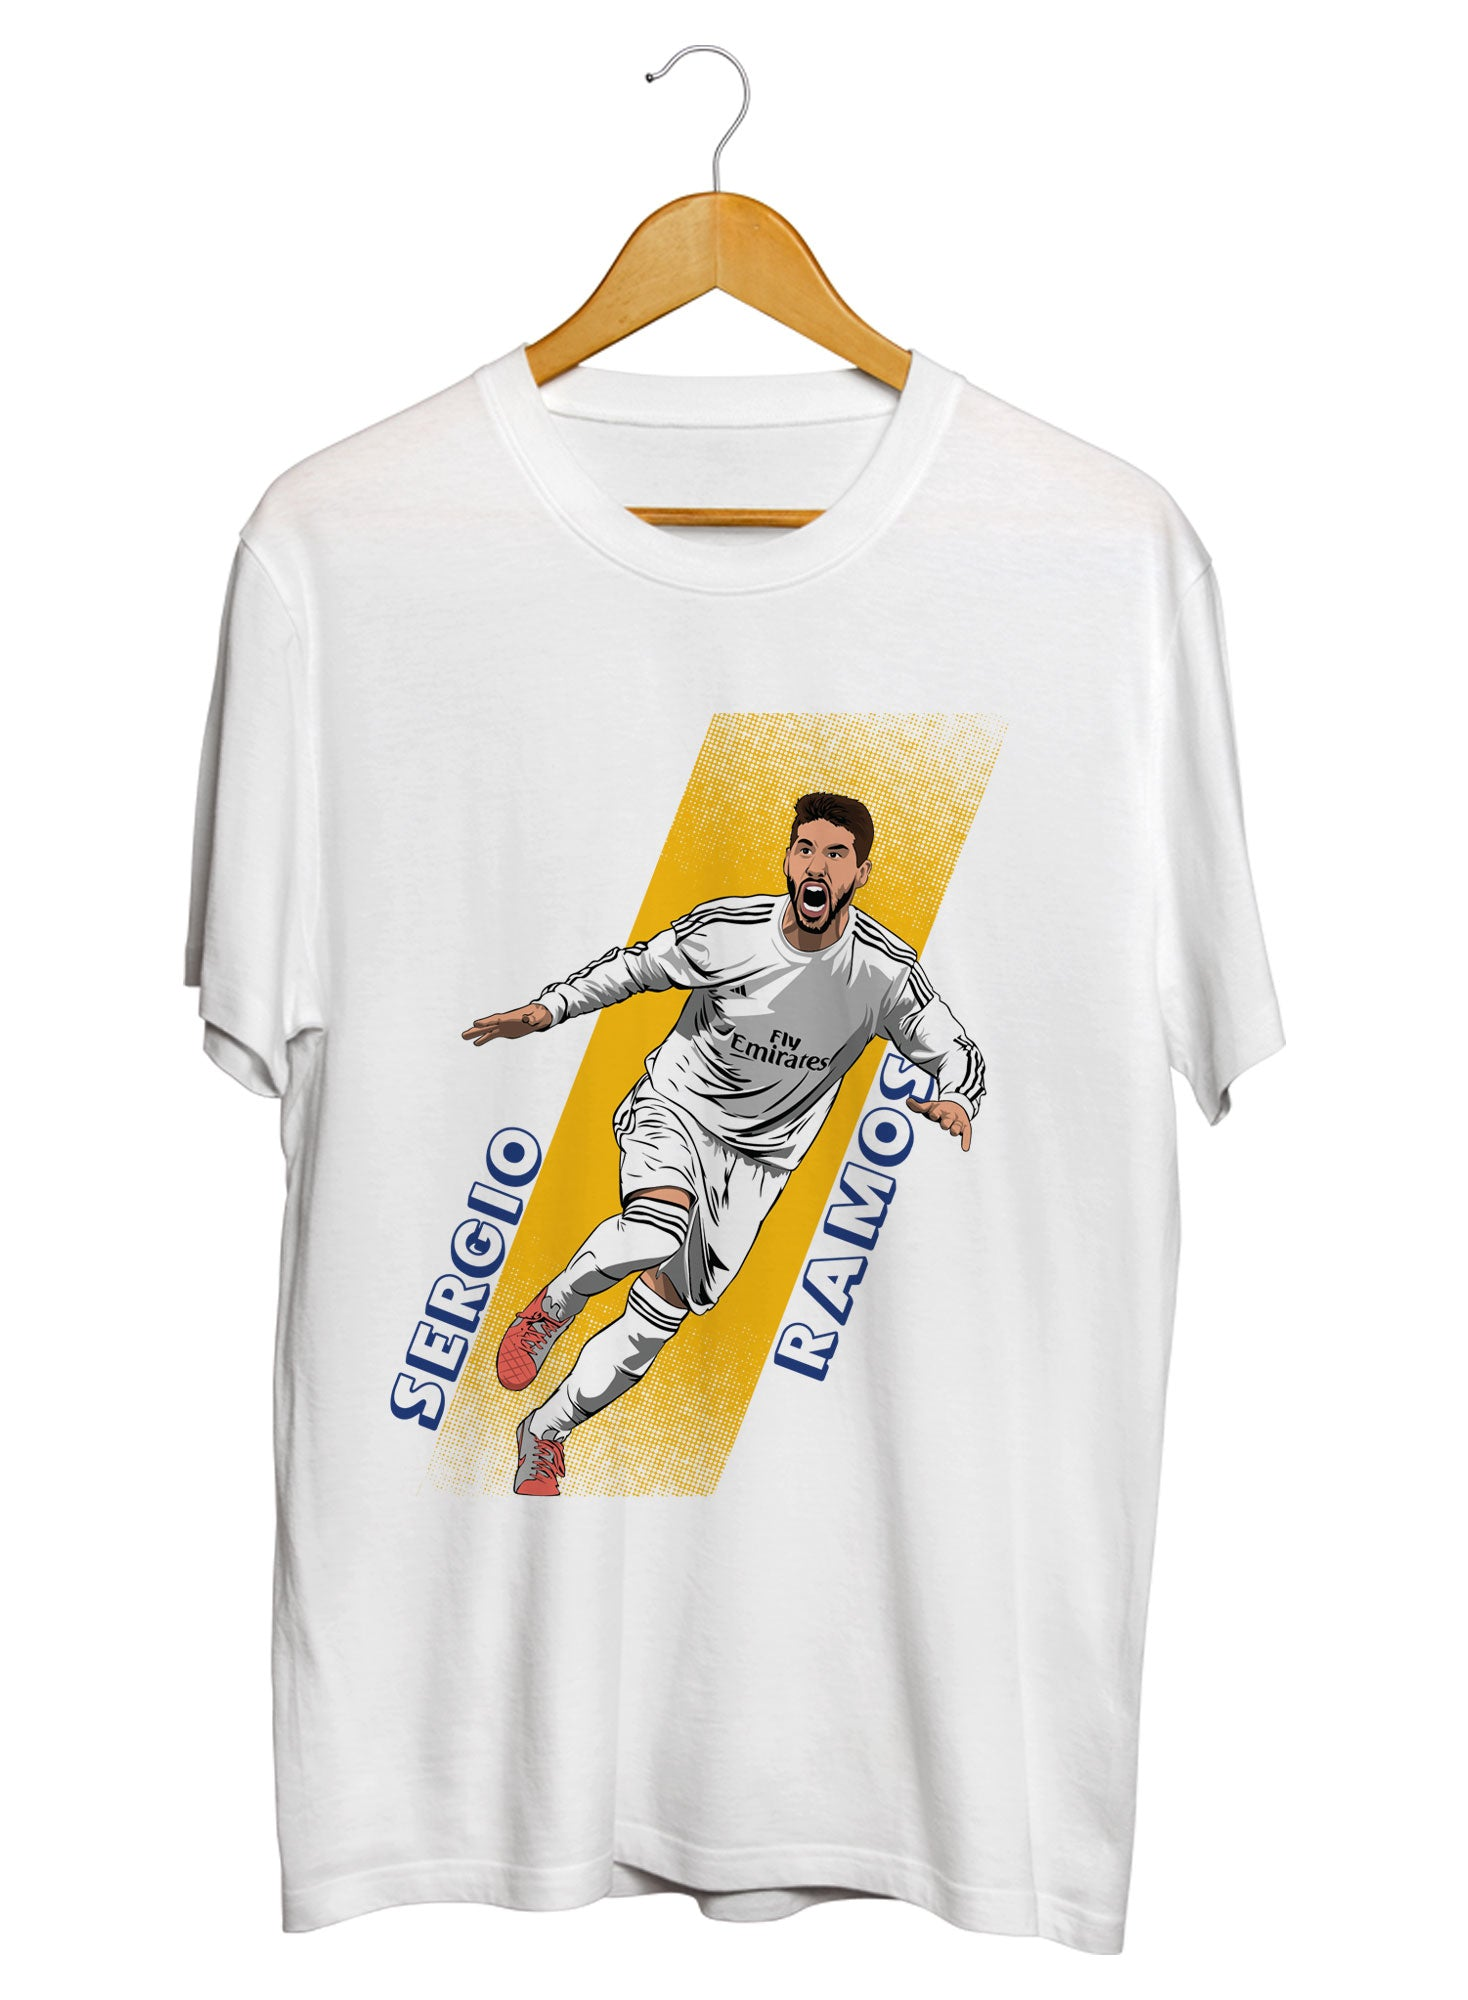 Sergio Ramos Celebration T-shirts